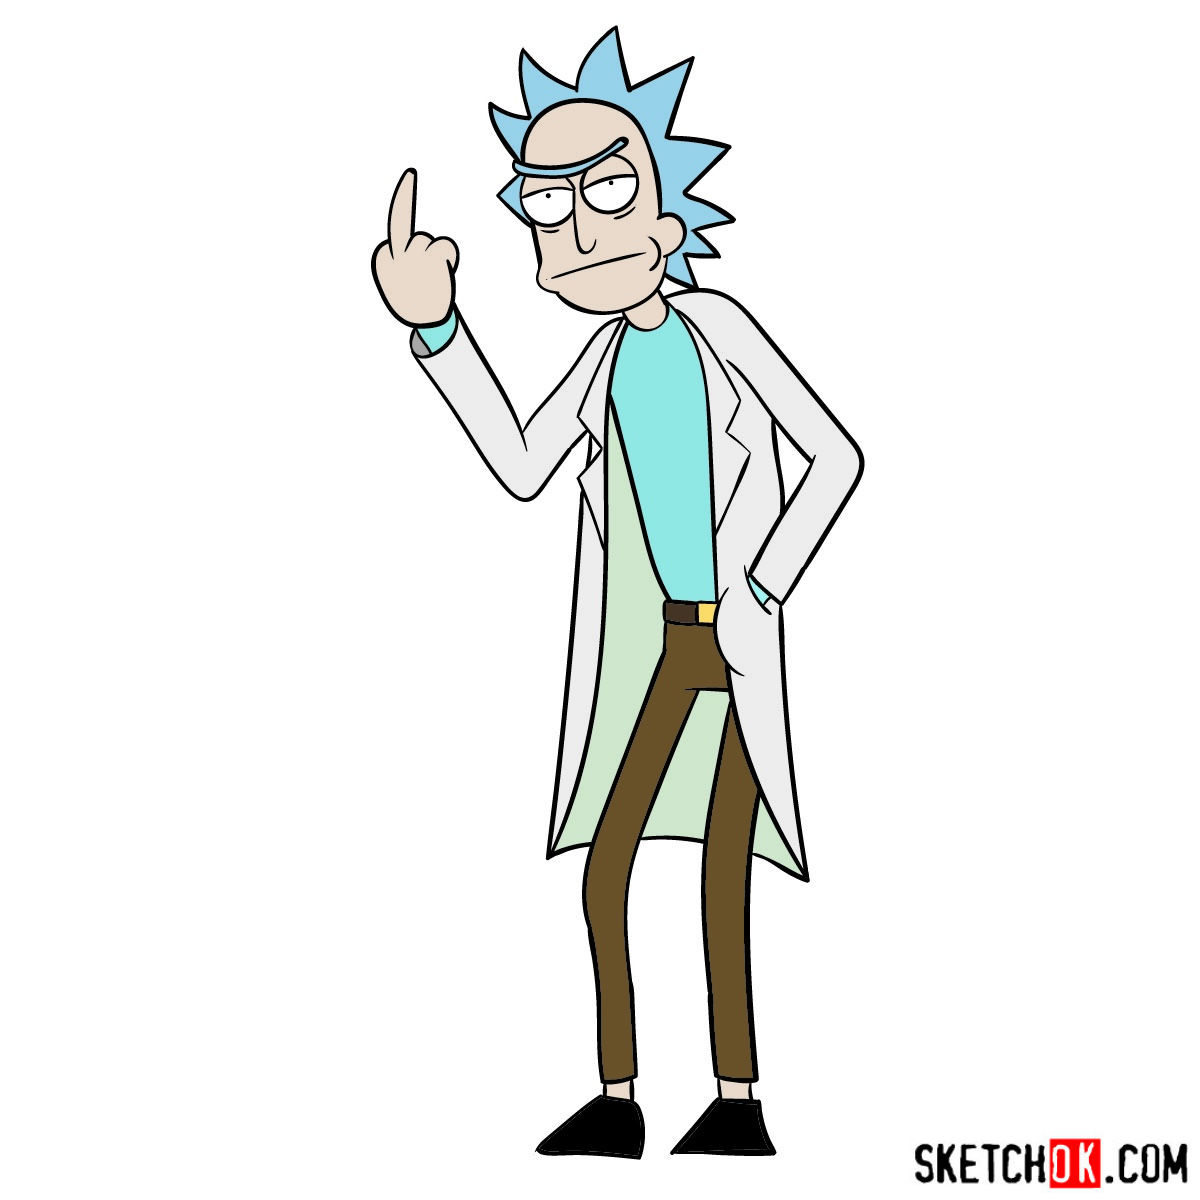 How to draw Rick showing his middle finger